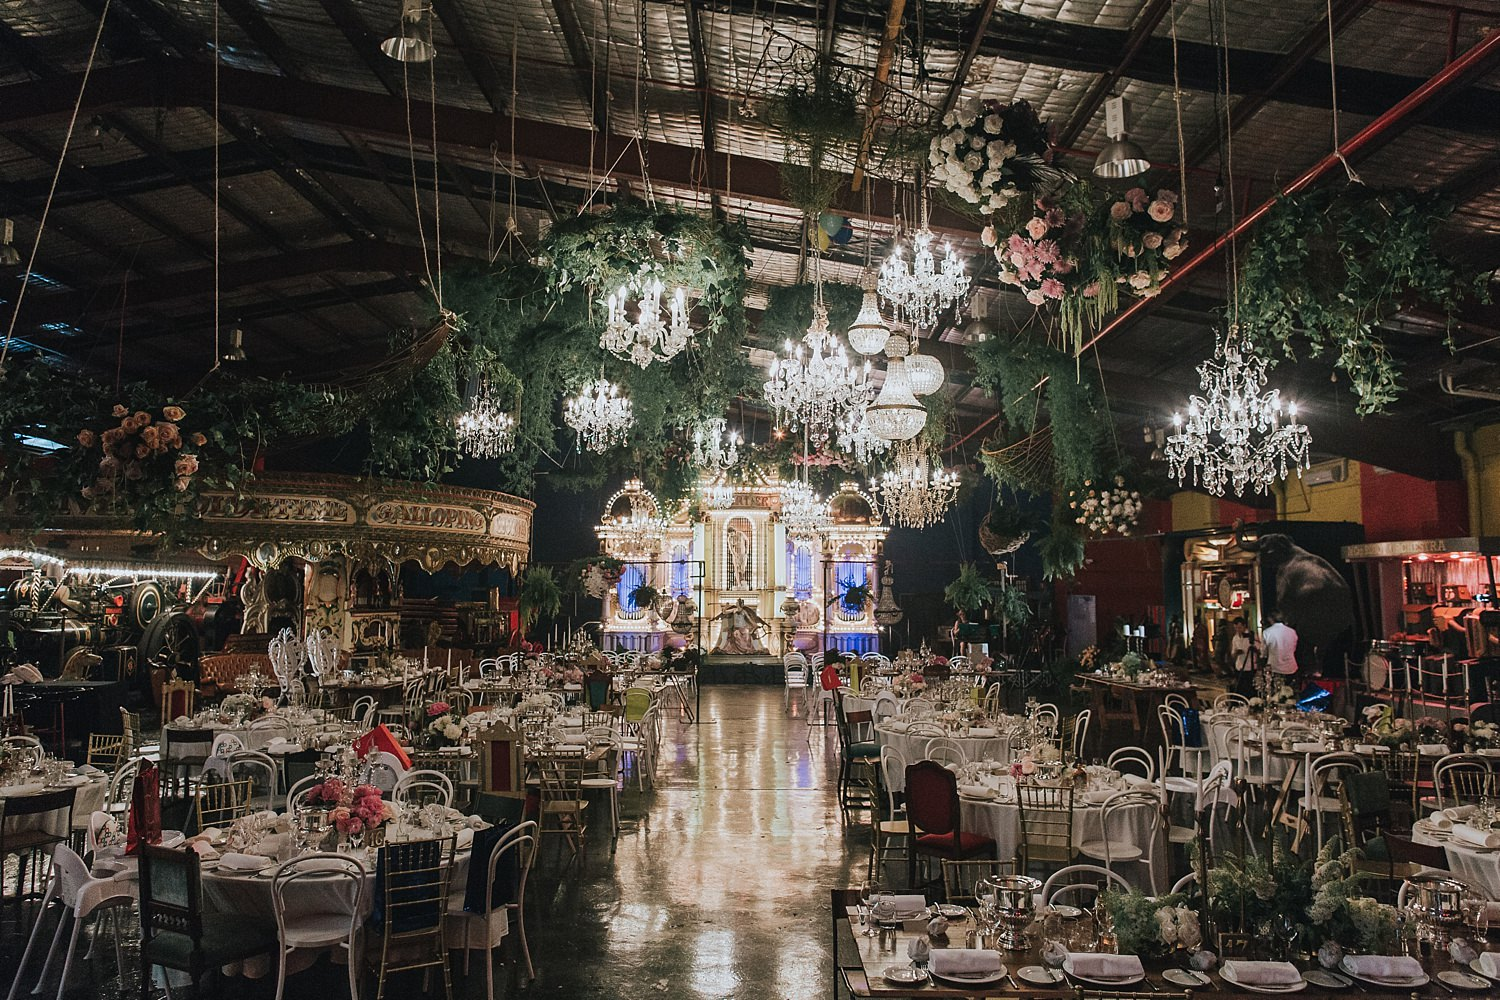 wedding ceremony styling by she designs at fairground follies sydney